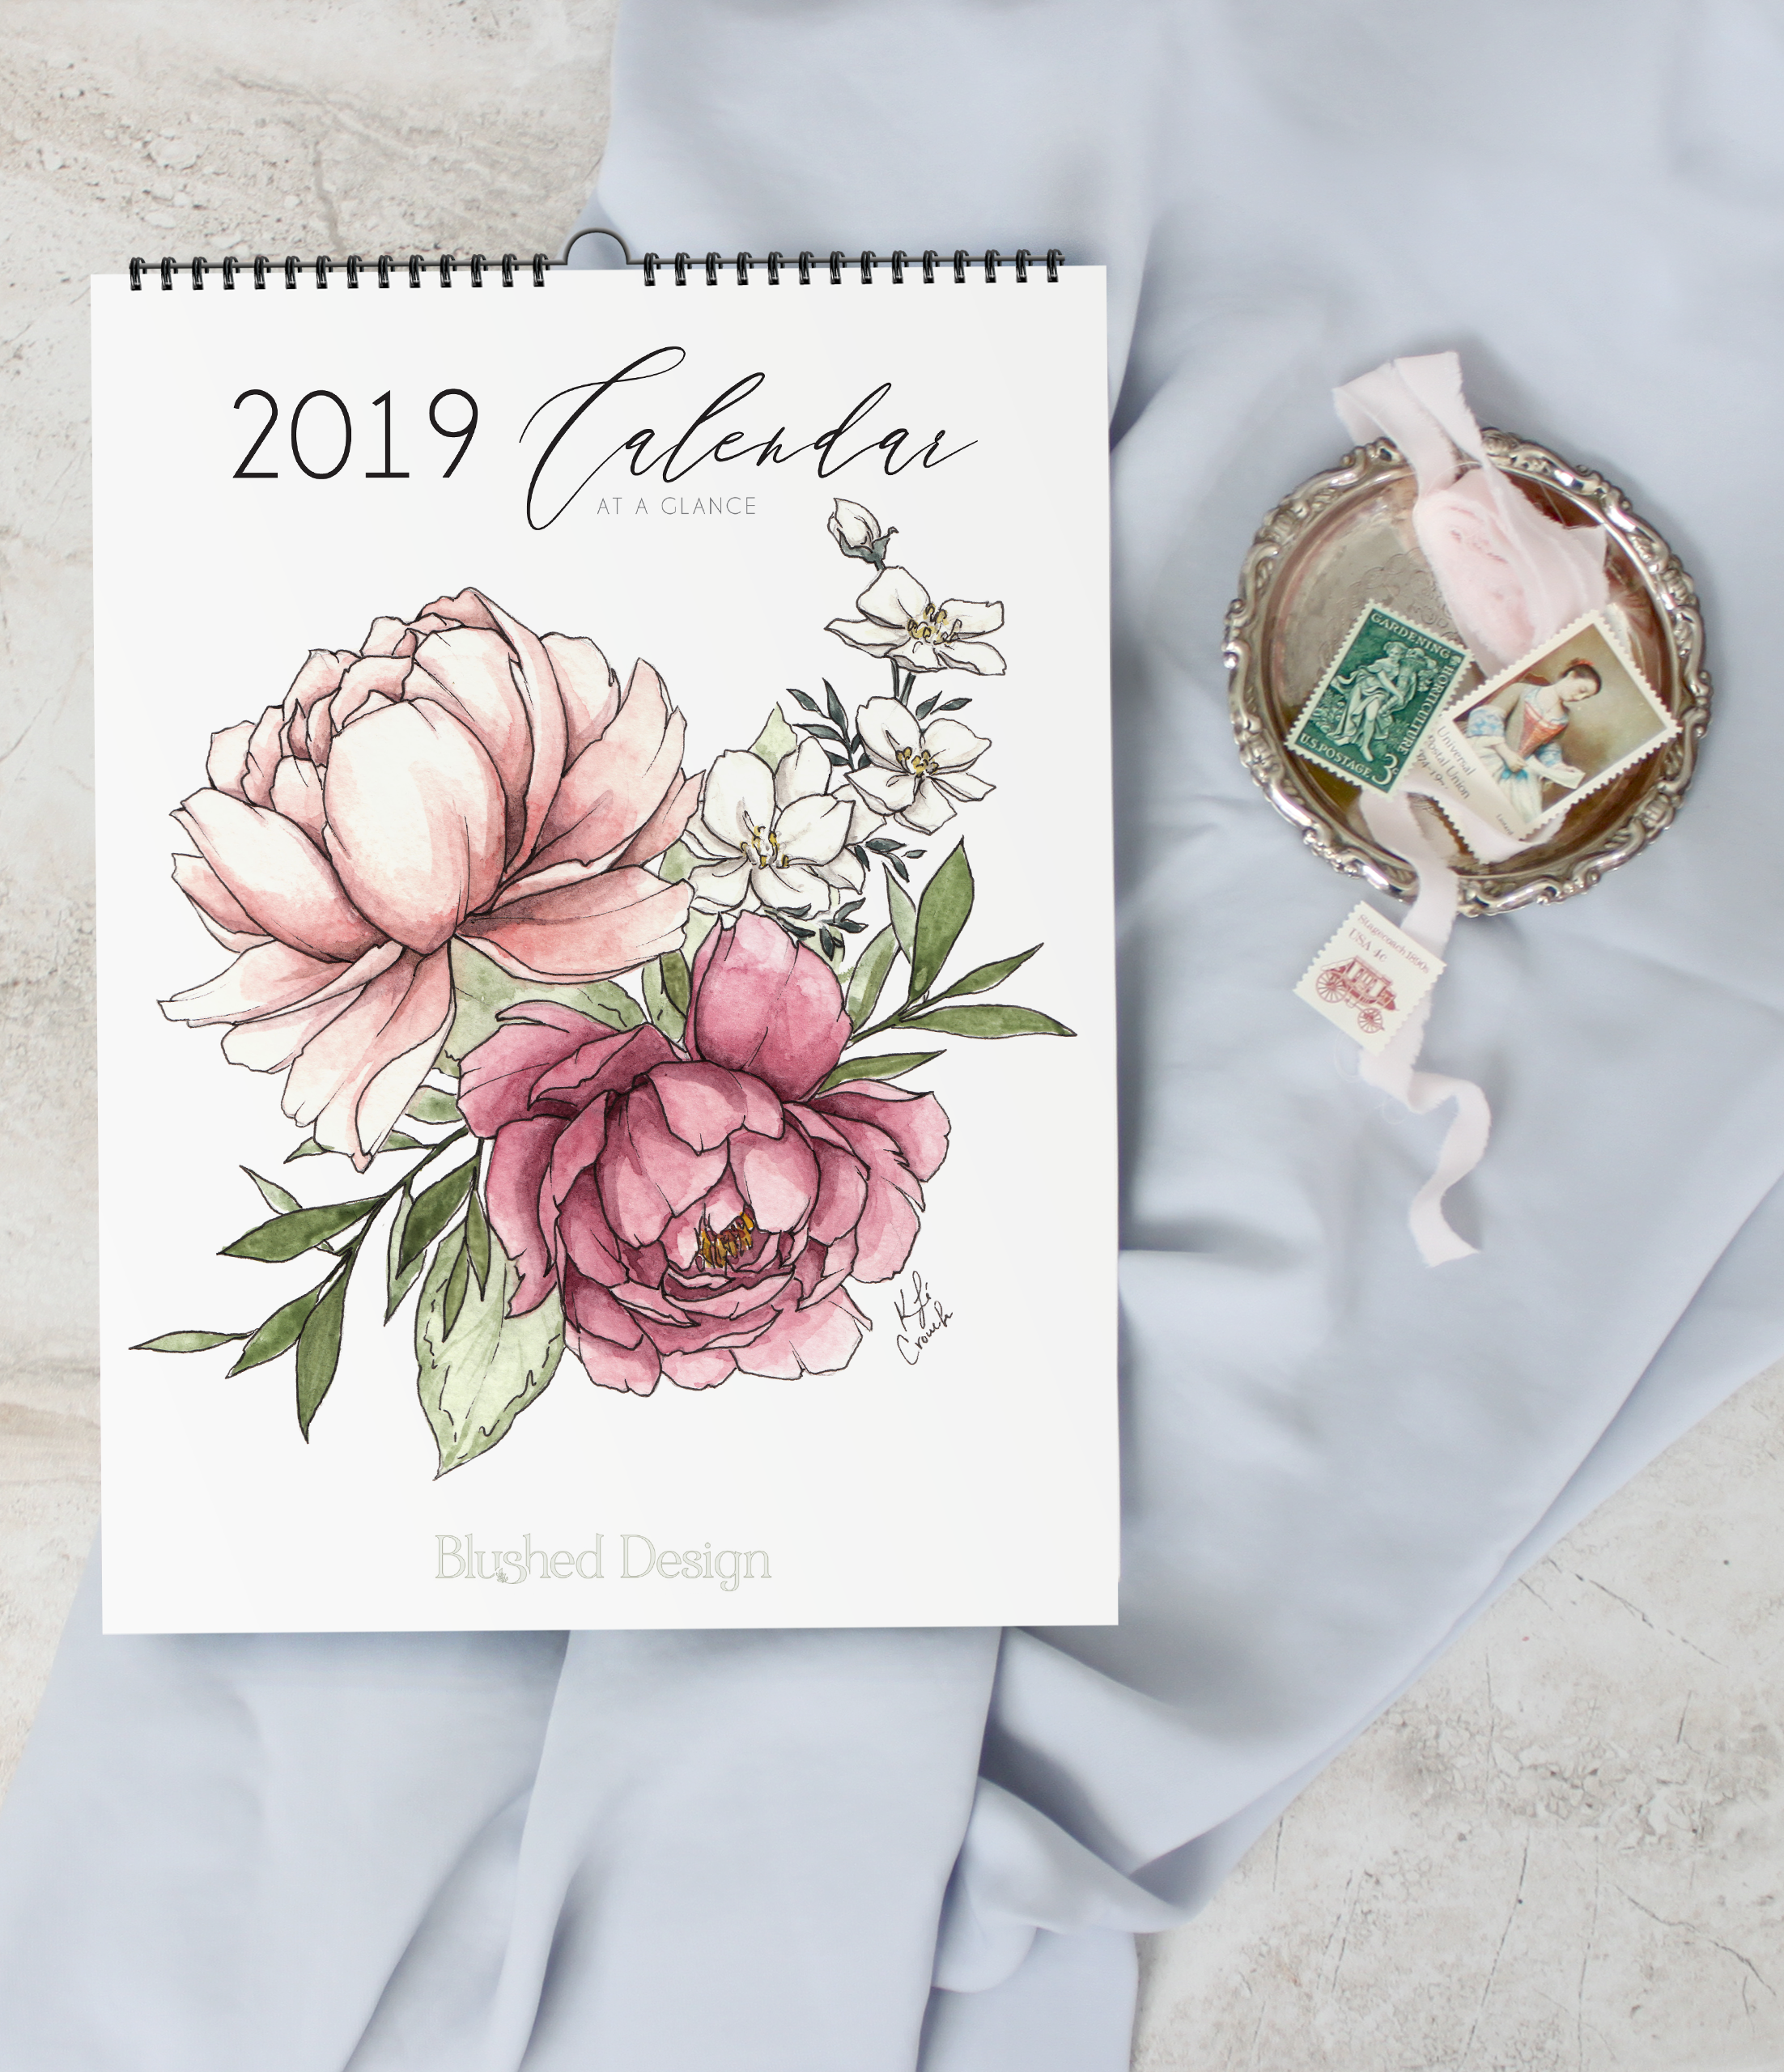 2019 wall calendar design featuring 12 watercolor botanicals. #watercolorflowers #watercolortutorial #botanicalcalendar www.BlushedDesign.com